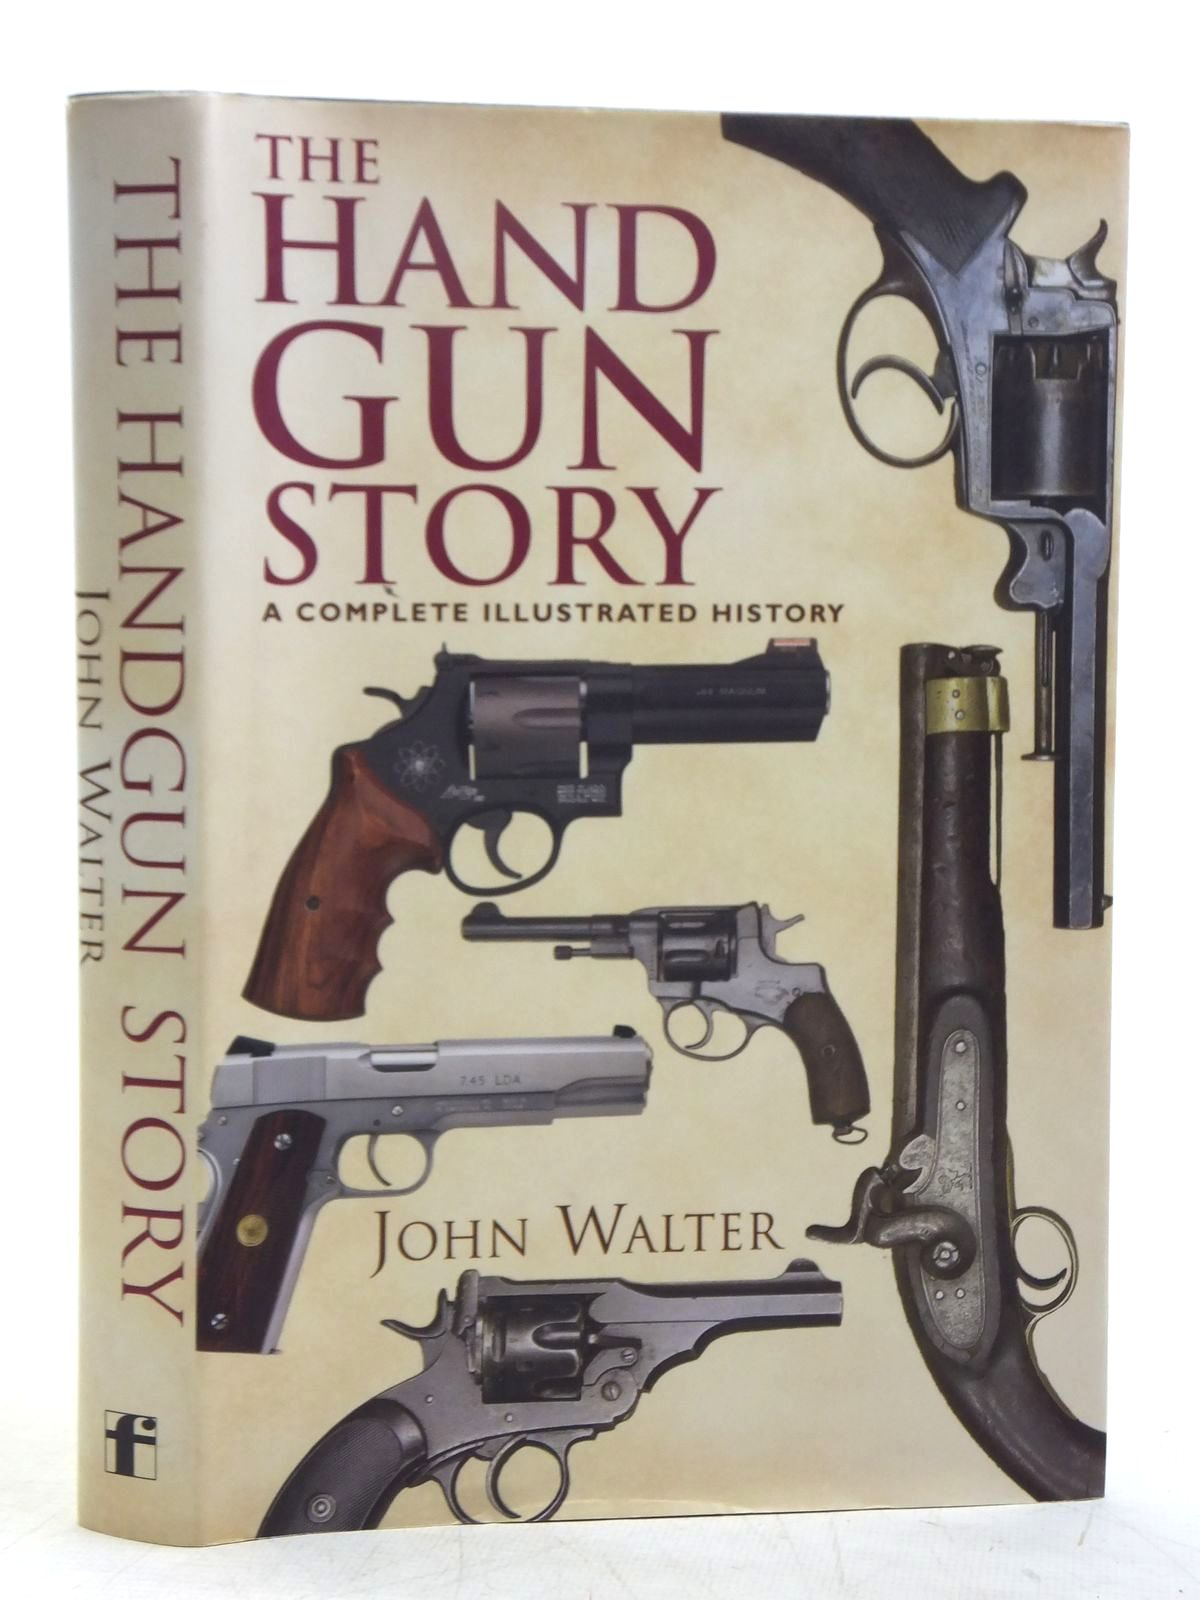 Photo of THE HANDGUN STORY A COMPLETE ILLUSTRATED HISTORY written by Walter, John published by Frontline Books (STOCK CODE: 2119344)  for sale by Stella & Rose's Books